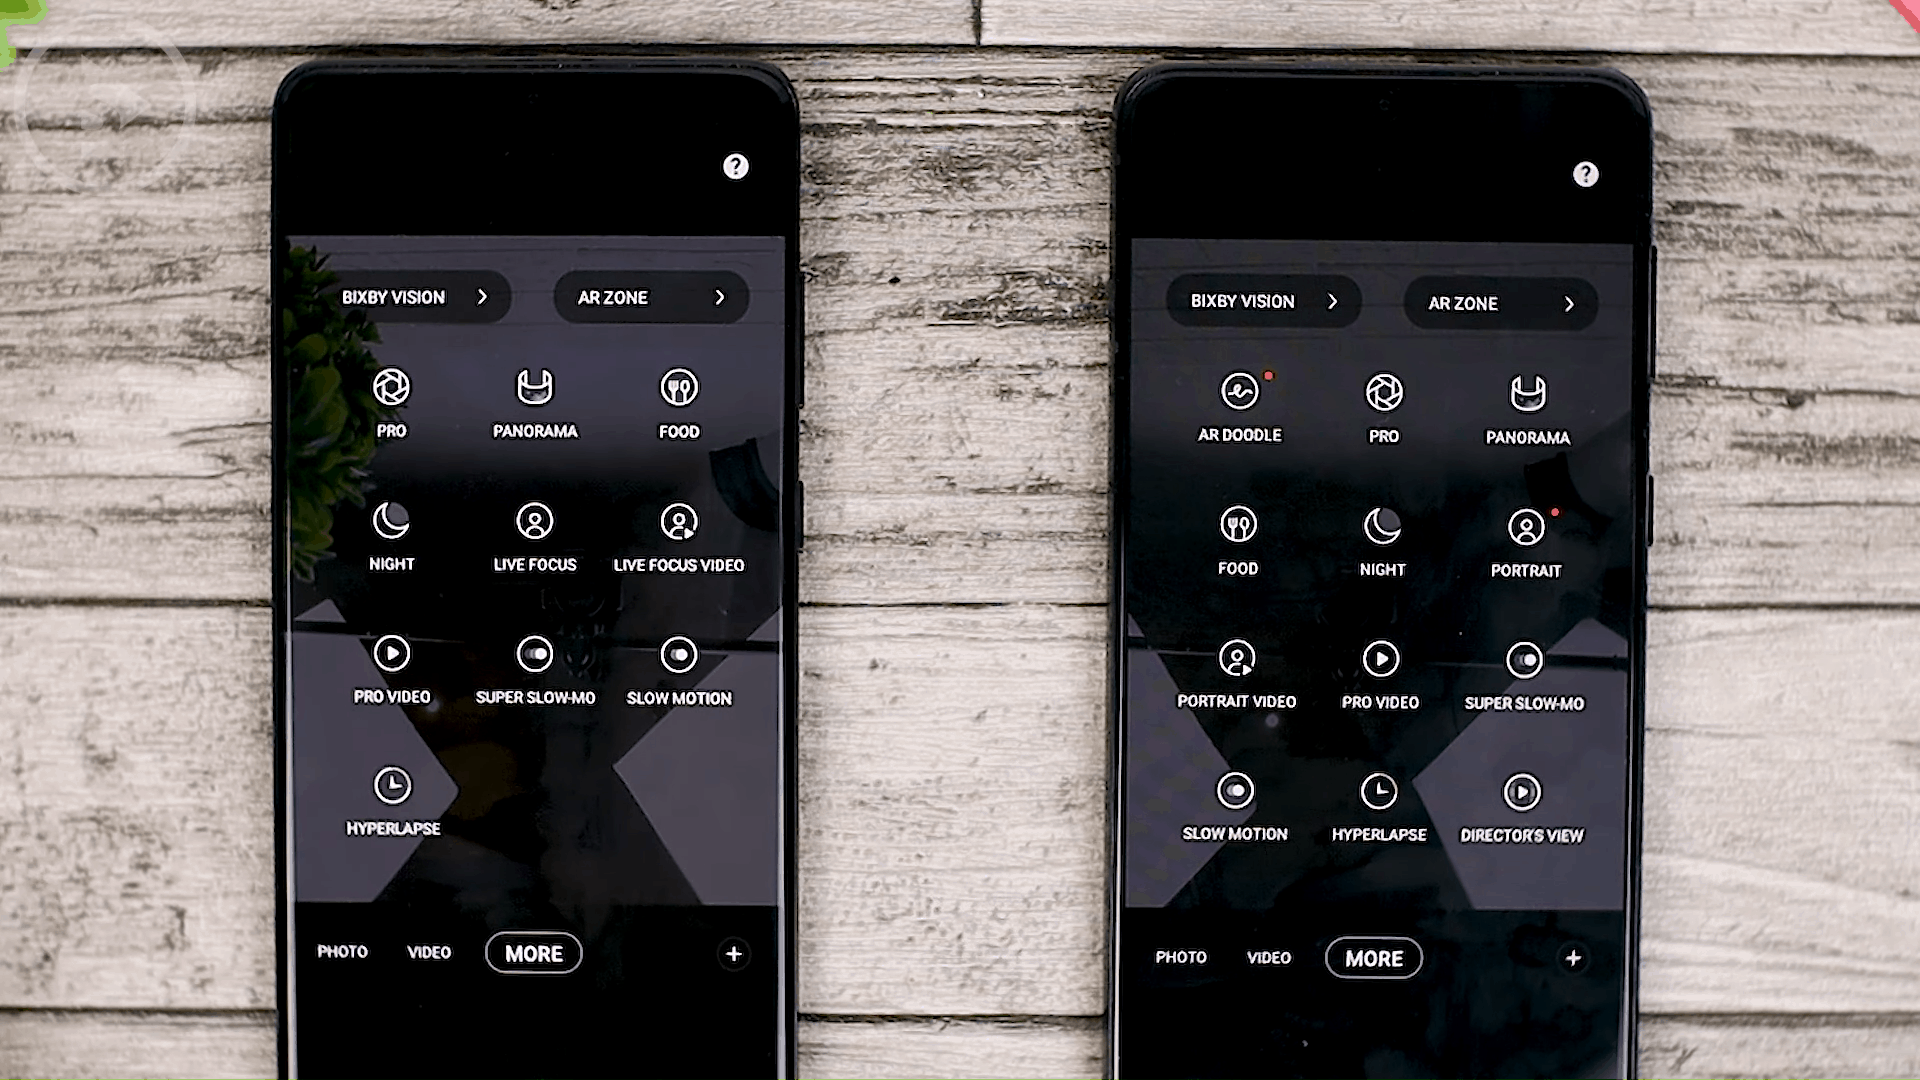 Camera Settings - Check out the latest One UI 3.1 features on the Samsung S21 + that are not yet available on One UI 3.0 Samsung S20 + (PART 2)